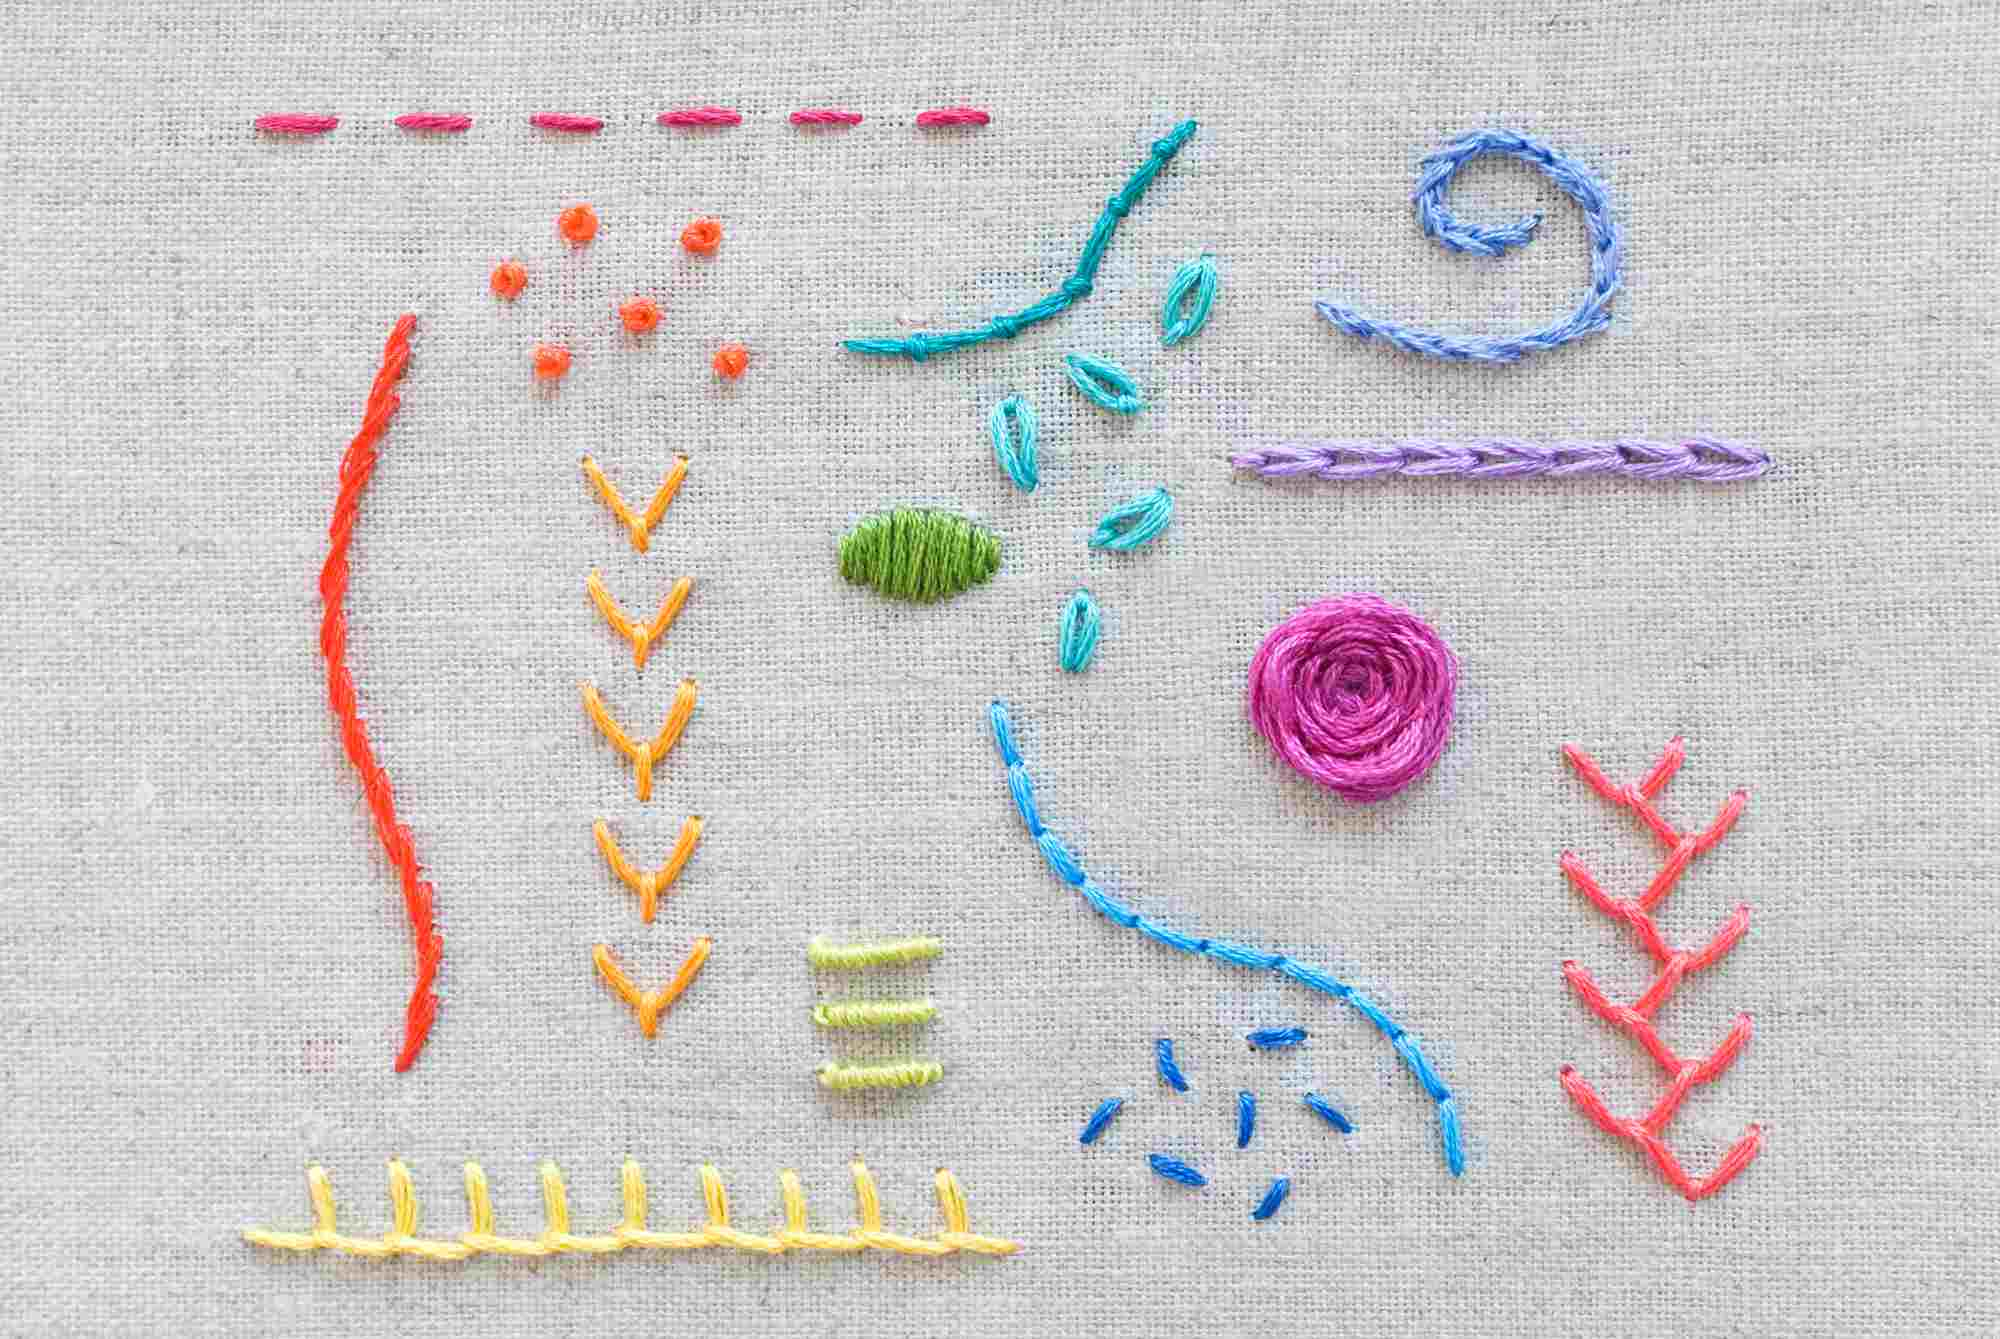 How To Make An Embroidery Pattern 15 Stitches Every Embroiderer Should Know